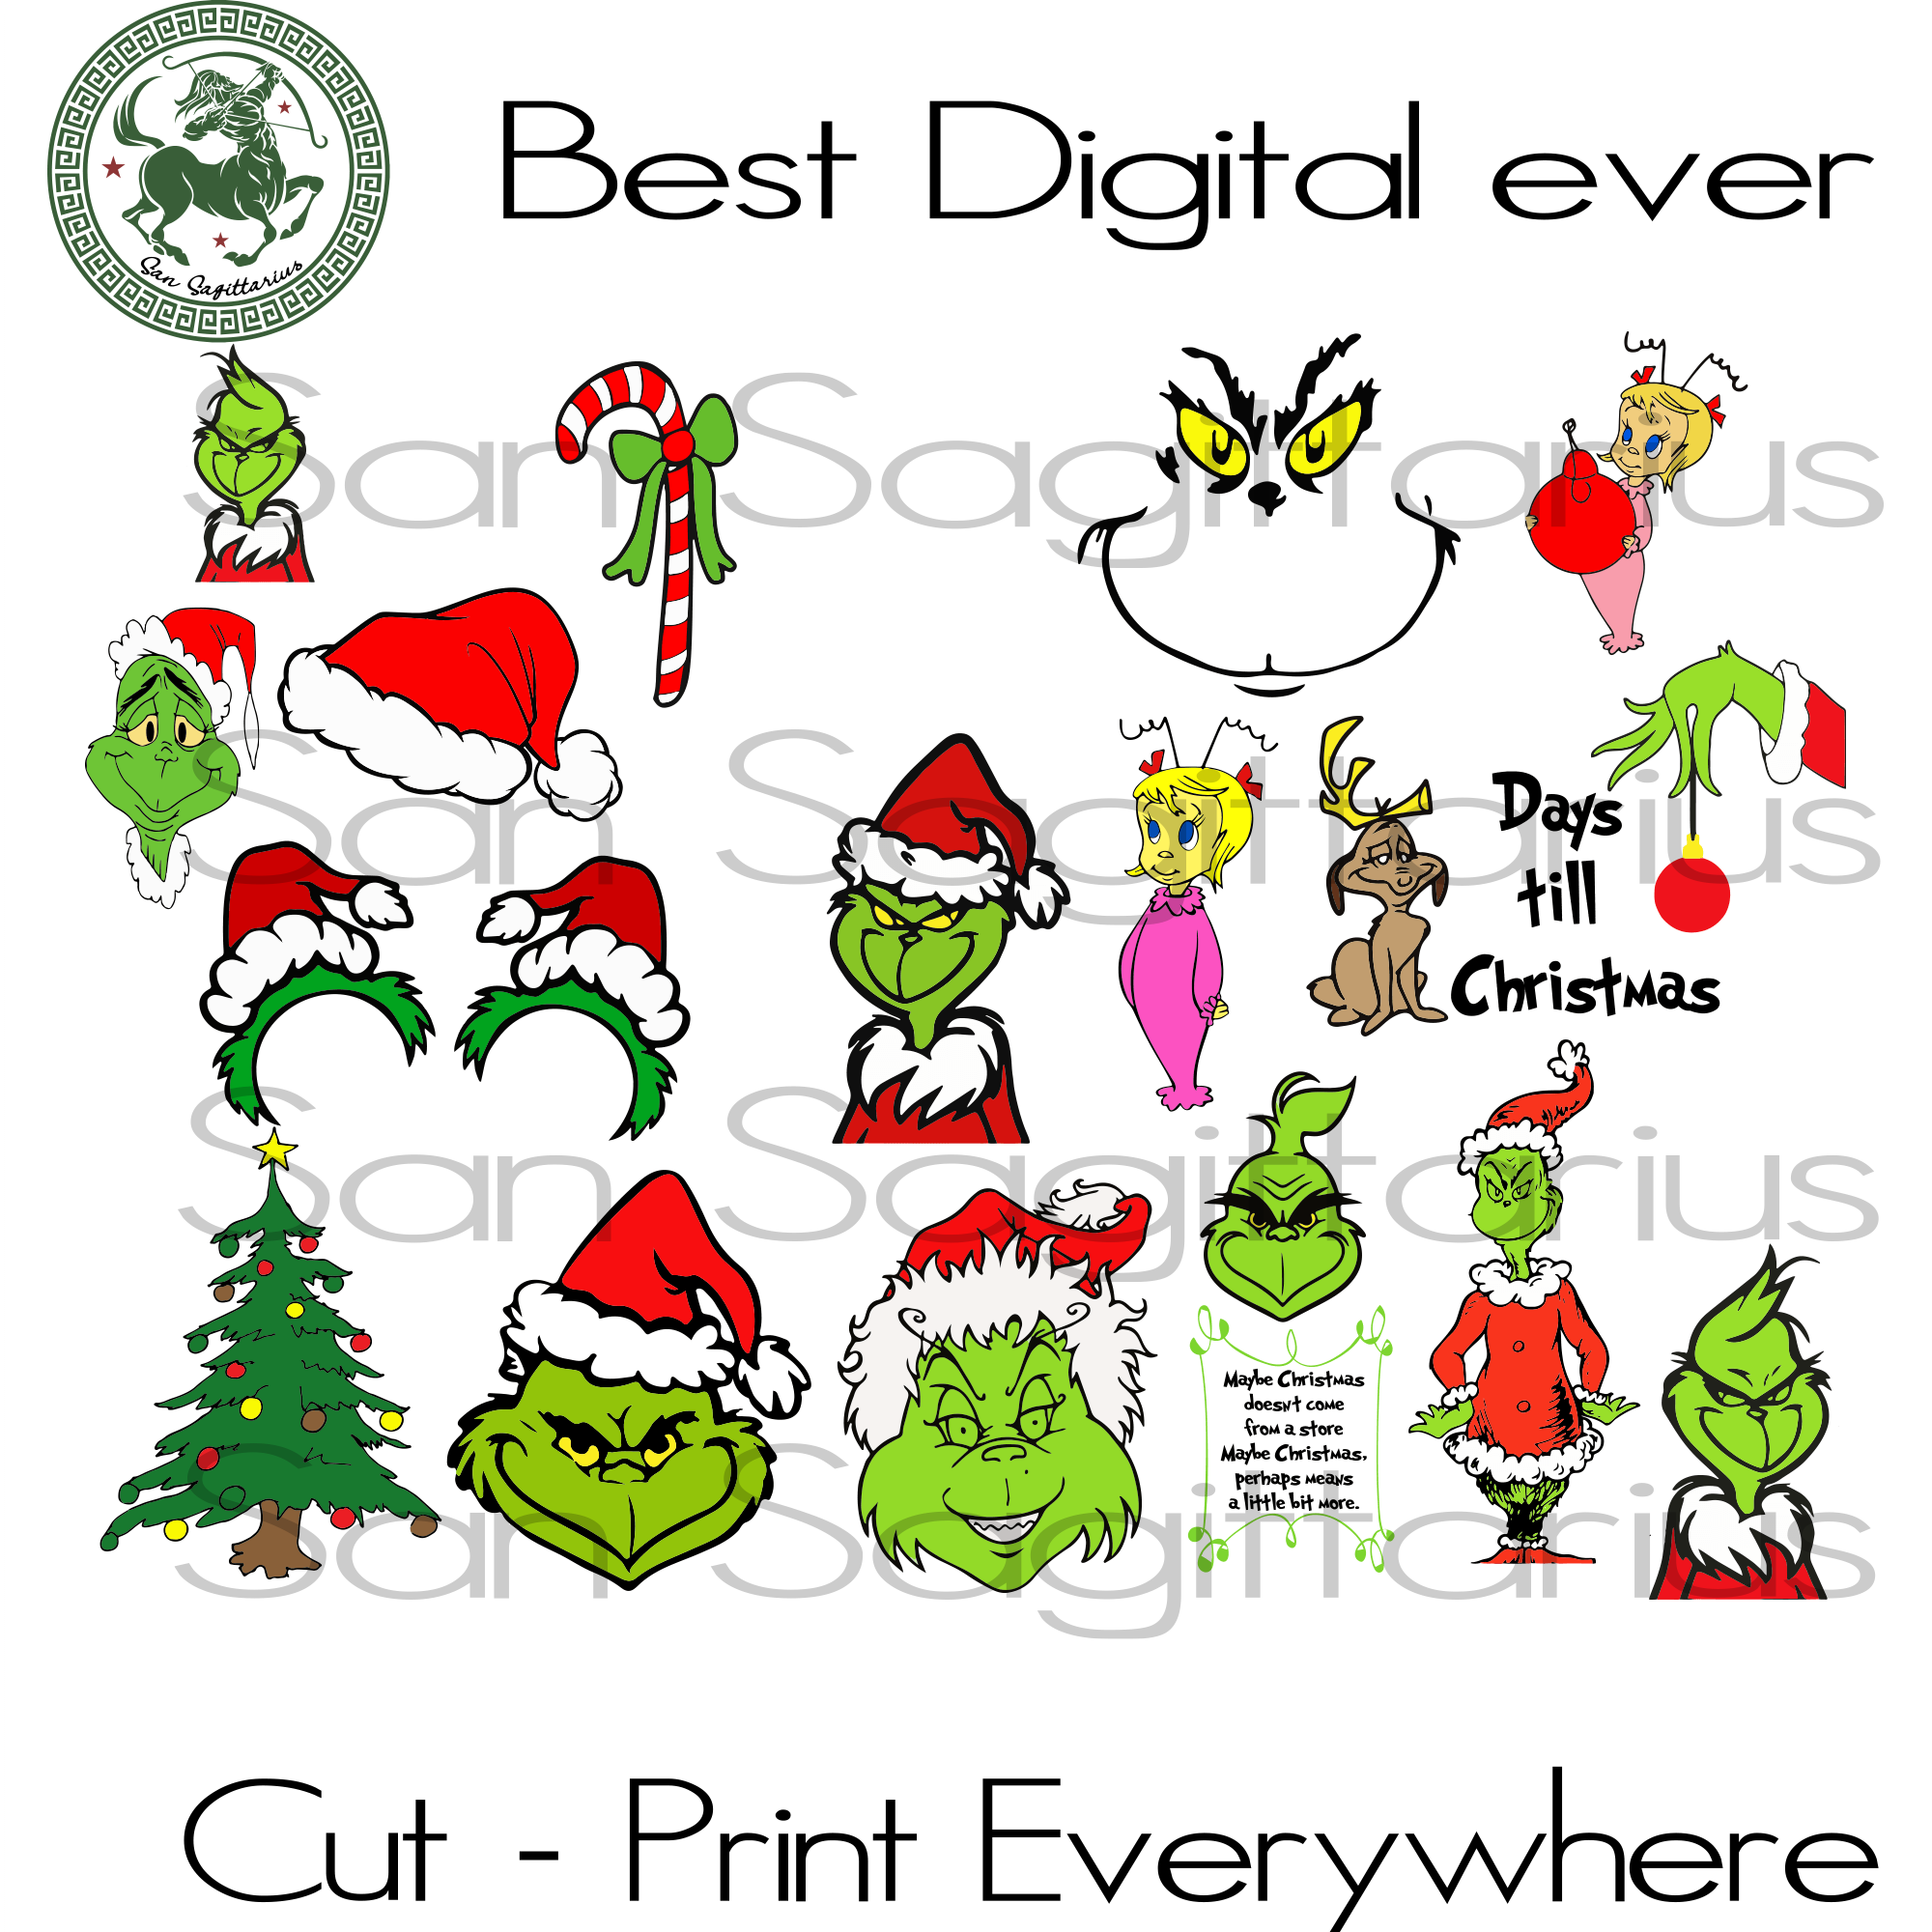 Grinch svg bundle, grinch hat, grinch face, grinch santa hat, grinch hand ornaments, the grinch, santa hat, christmas svg, christmas gifts, merry christmas, christmas holiday, funny christmas